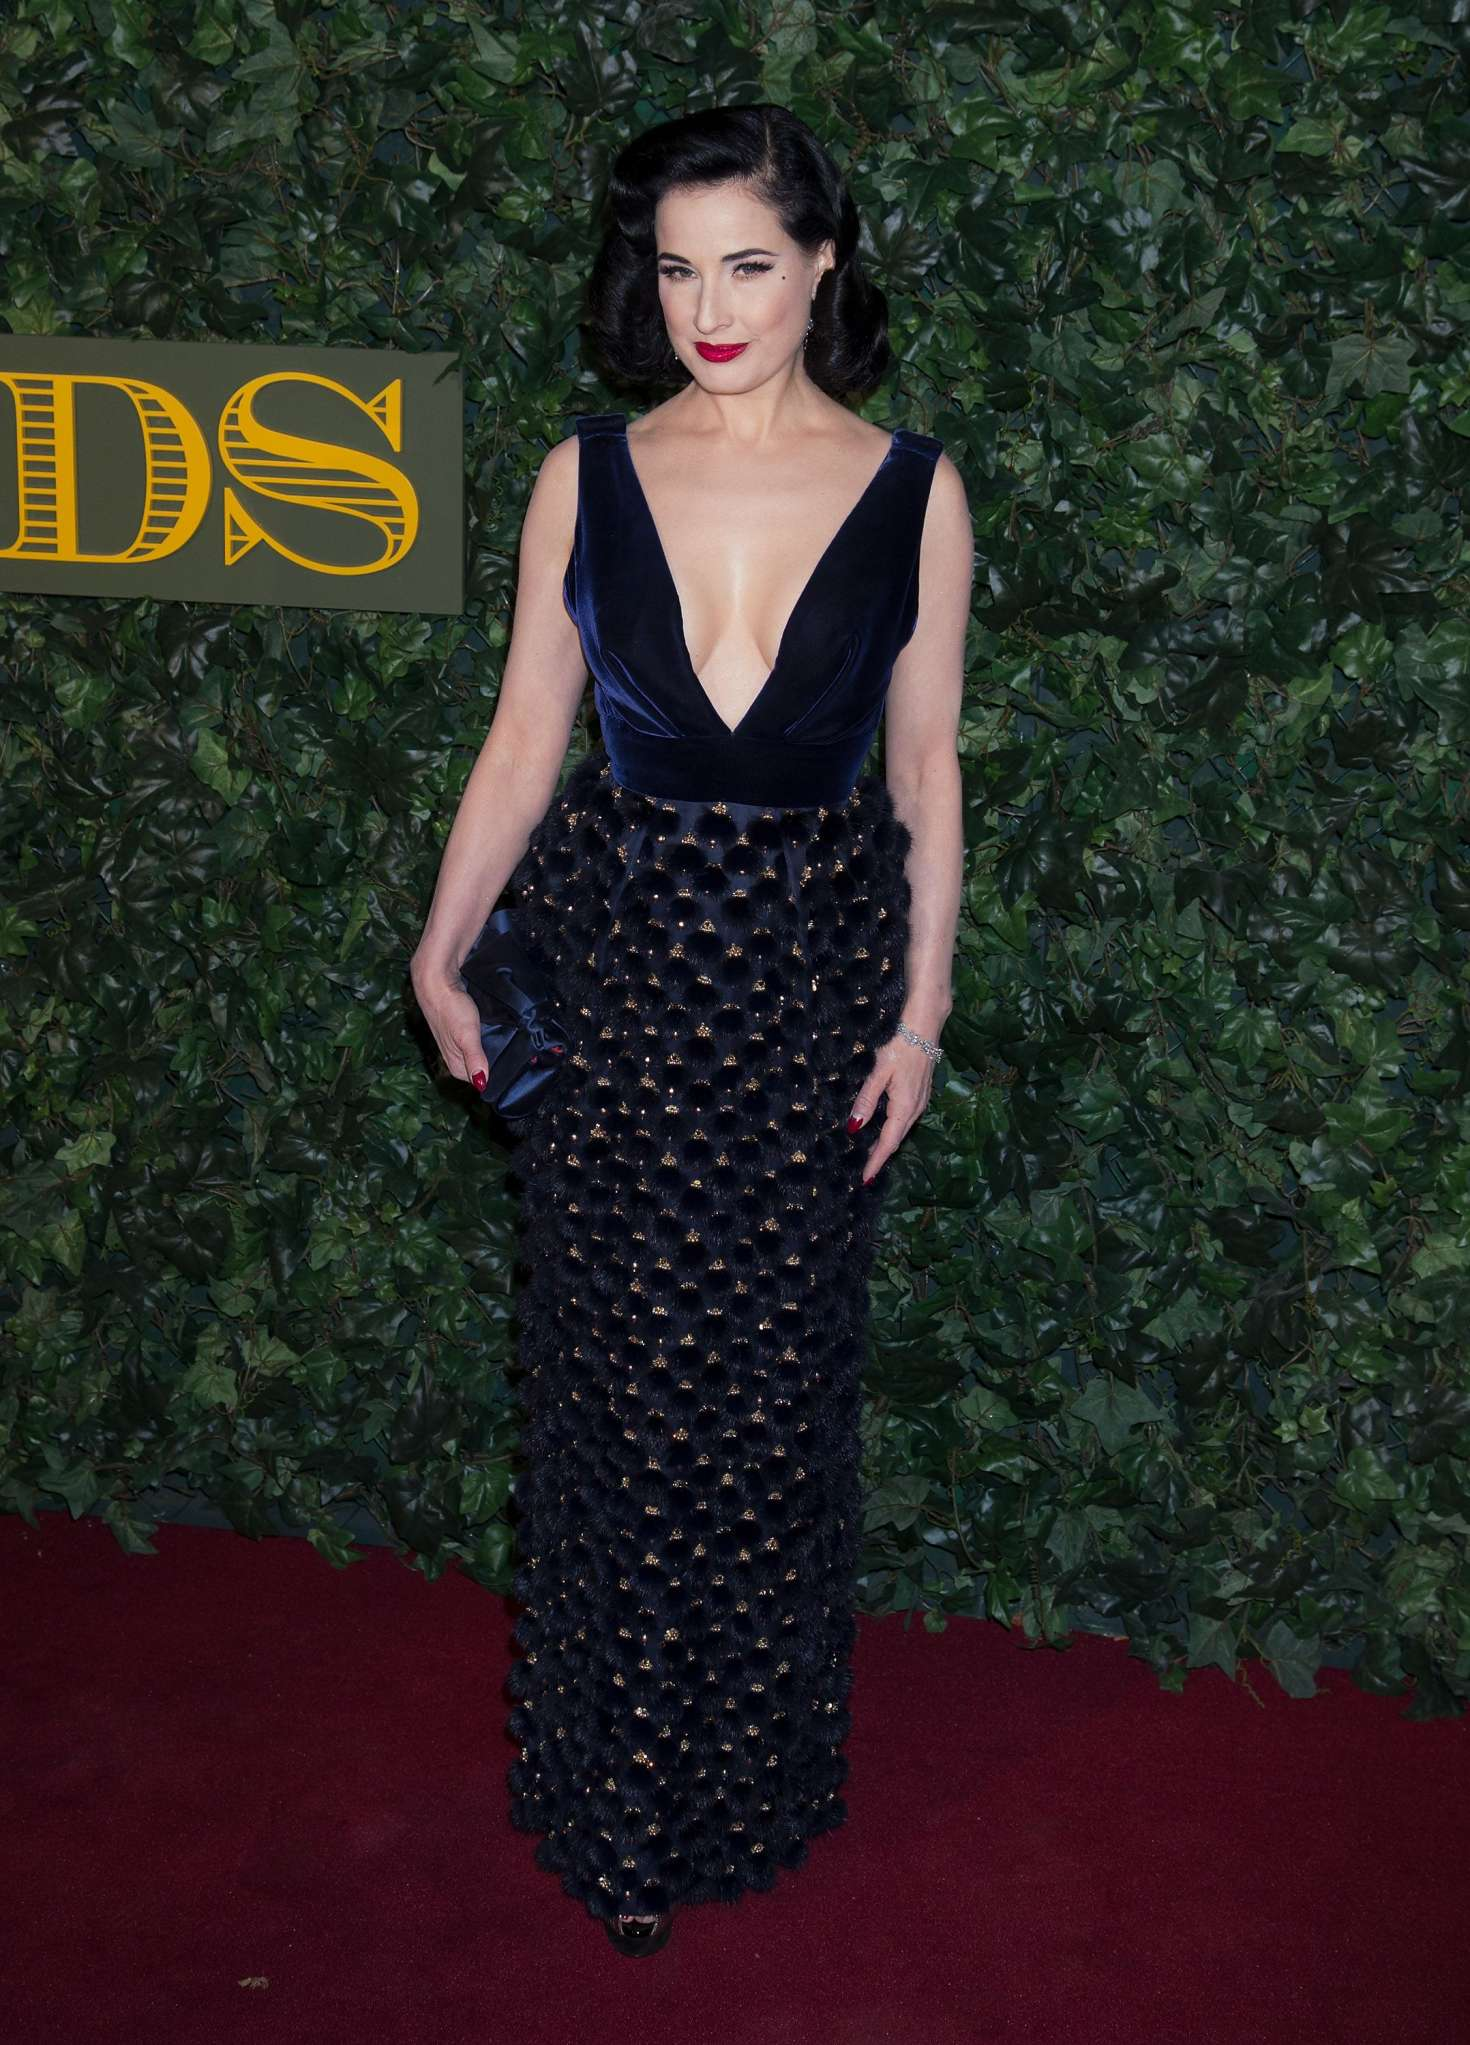 Dita Von Teese 2016 : Dita Von Teese: Evening Standard Theatre Awards 2016 -06